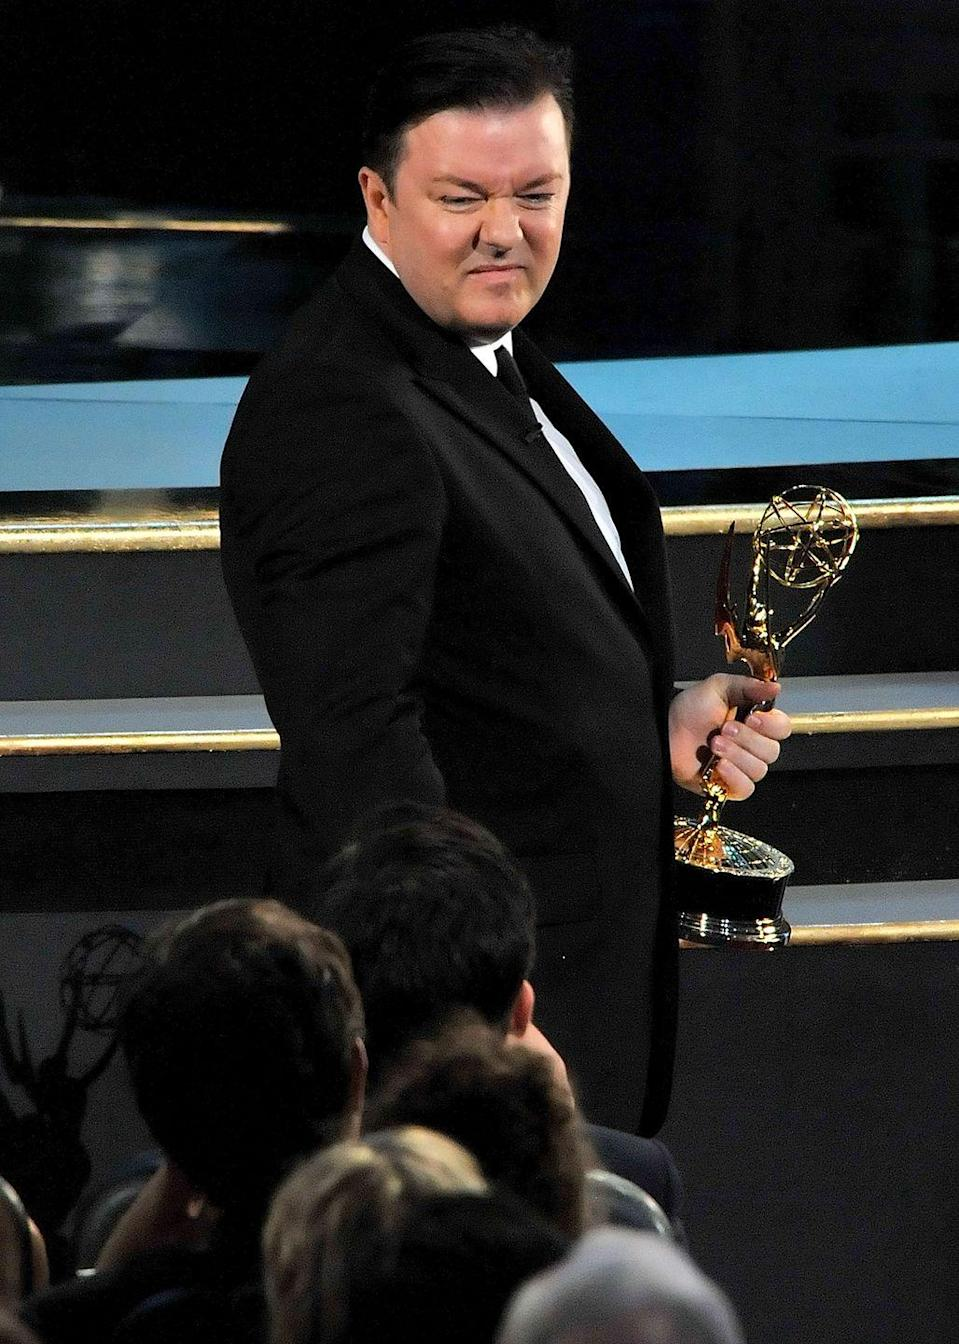 """<p>In 2007, Ricky Gervais won an Emmy award, but wasn't there to claim it, so Steve Carrell accepted it for him. In 2008, Gervais was at the Emmys... and he was not pleased that Carrell accepted his Emmy. In a very funny skit, Gervais tore Carrell down before <a href=""""https://www.youtube.com/watch?v=RZp6cR4bxbY"""" rel=""""nofollow noopener"""" target=""""_blank"""" data-ylk=""""slk:demanding his Emmy back"""" class=""""link rapid-noclick-resp"""">demanding his Emmy back</a>. </p>"""